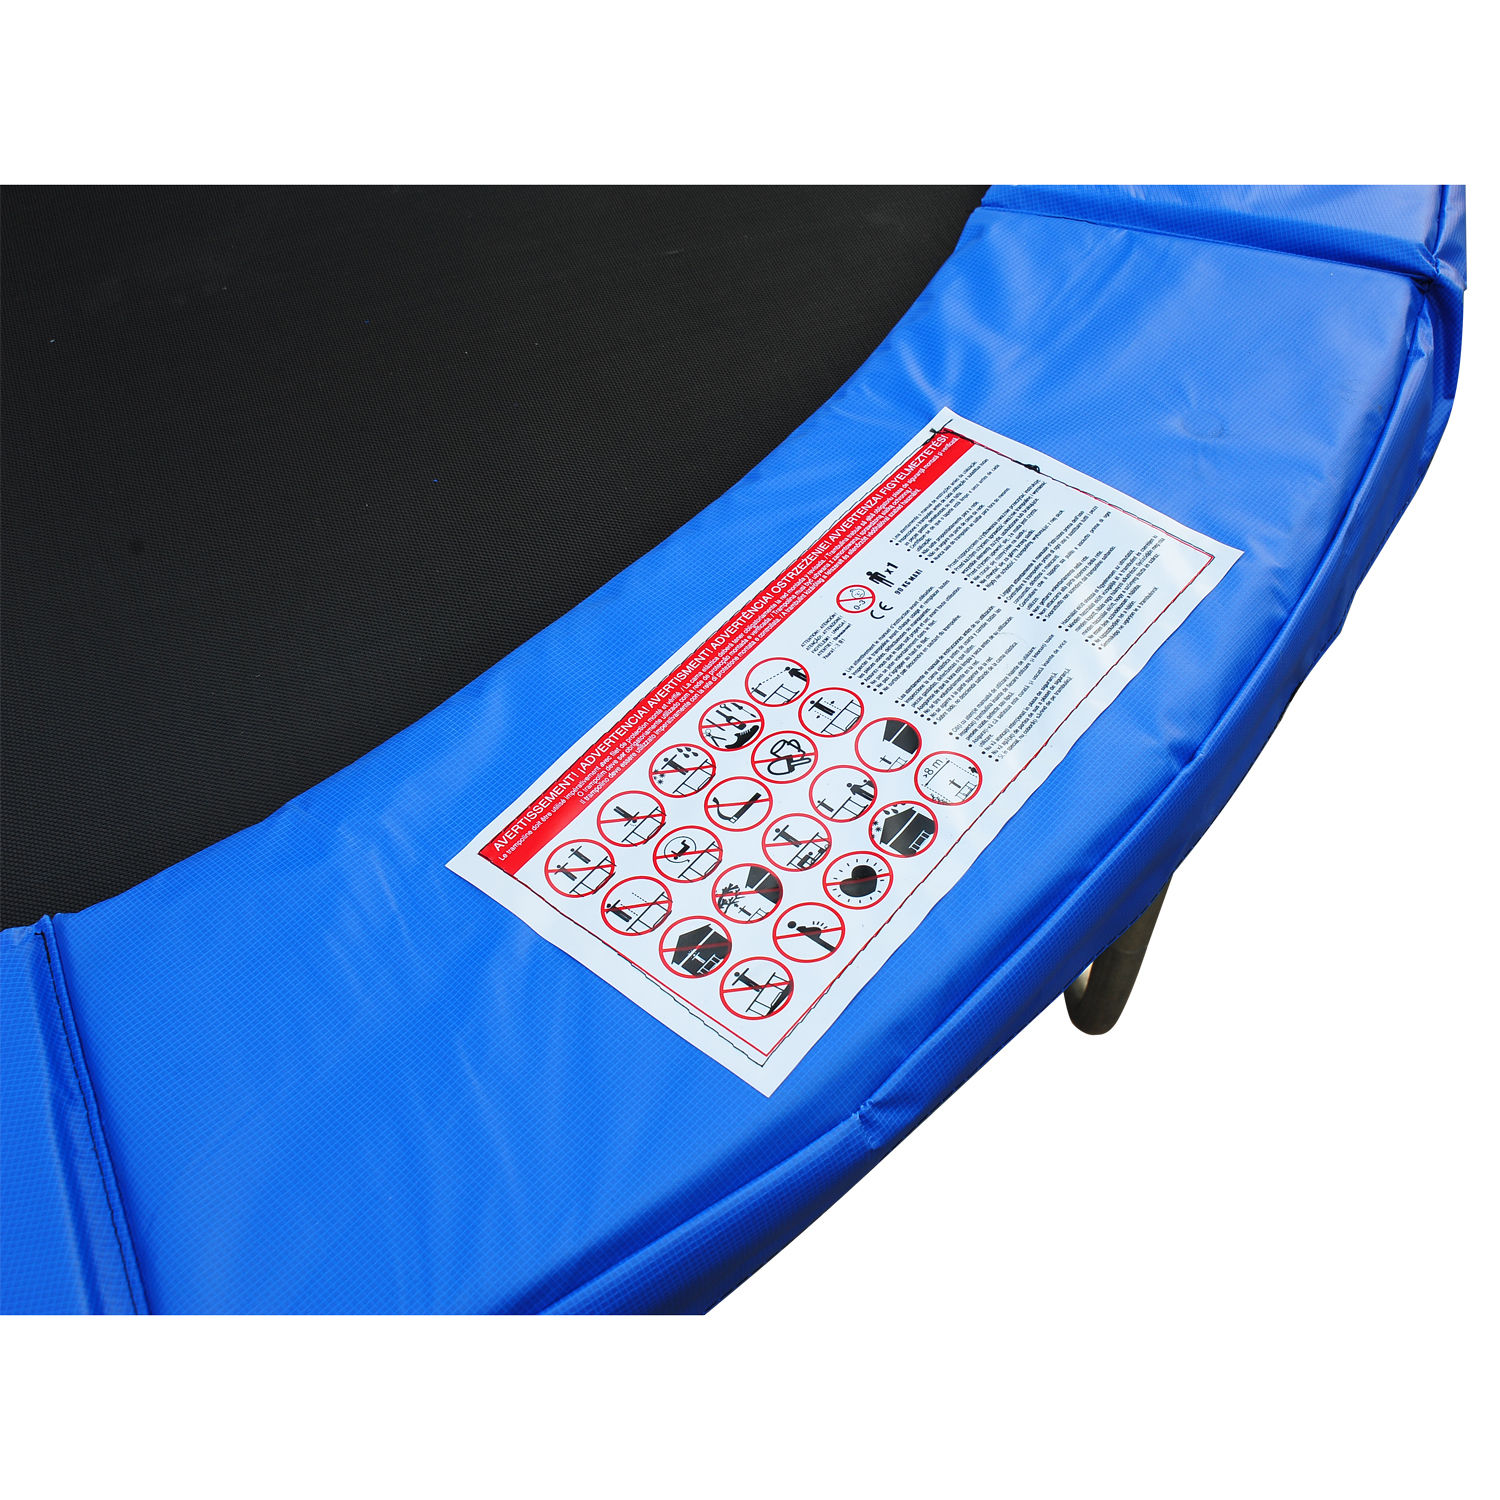 8ft-Trampoline-Pad-Spring-Safety-Replacement-Gym-Bounce-Jump-Cover-EPE-Foam thumbnail 6